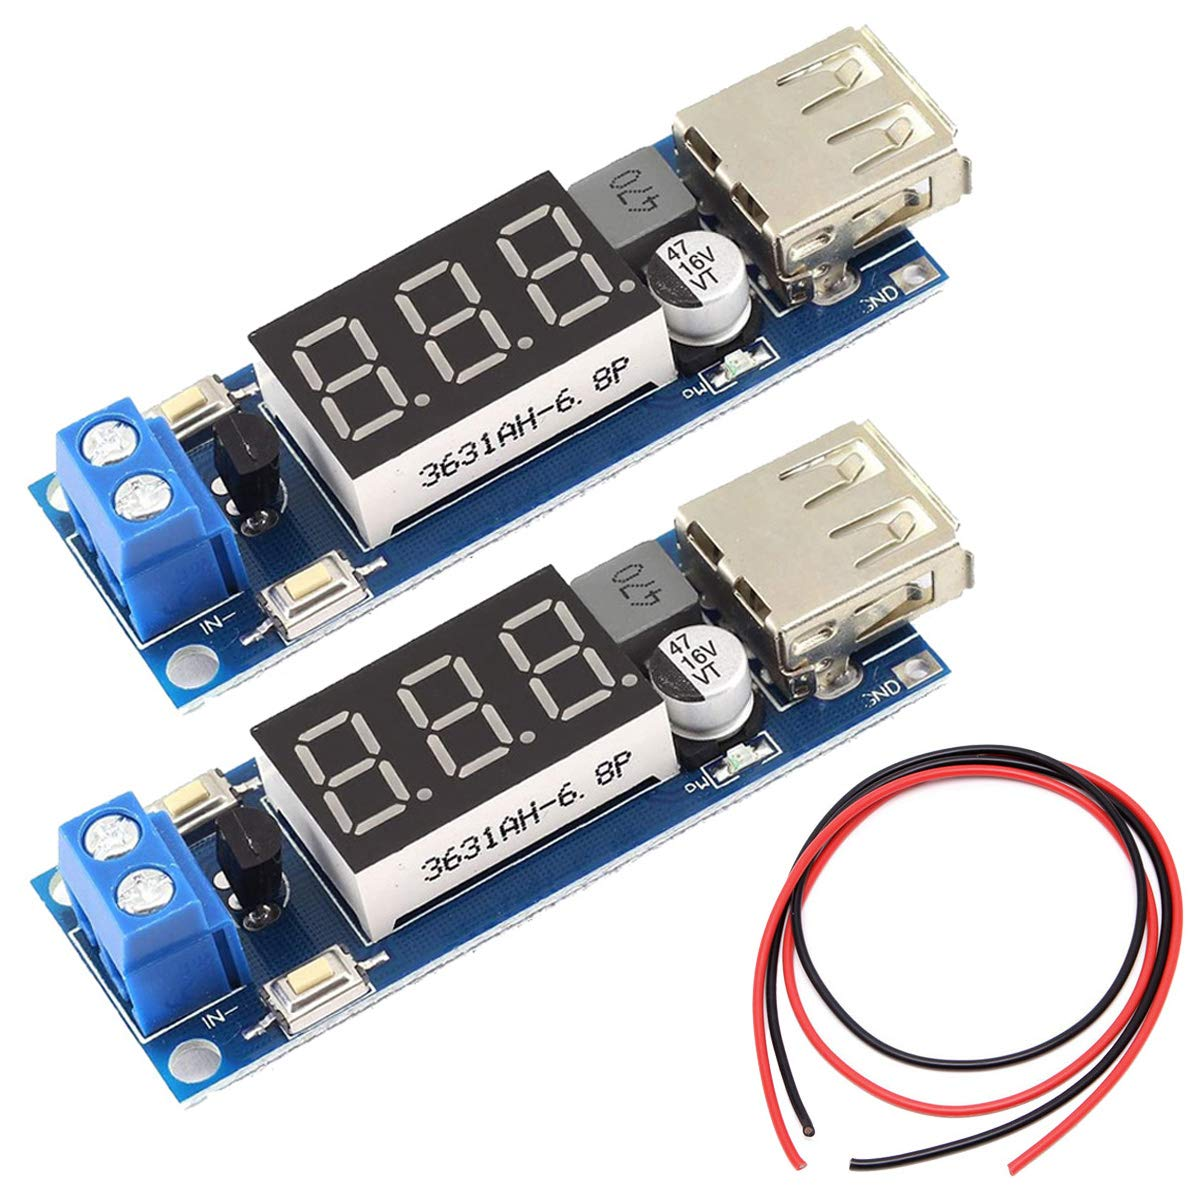 DAOKI 2 Pack DC-DC Buck Voltage Converter 6.5-40V to 5V 2A Step-Down USB Output Voltmeter Module Low Power Transformer with LED Display, 24AWG Wire